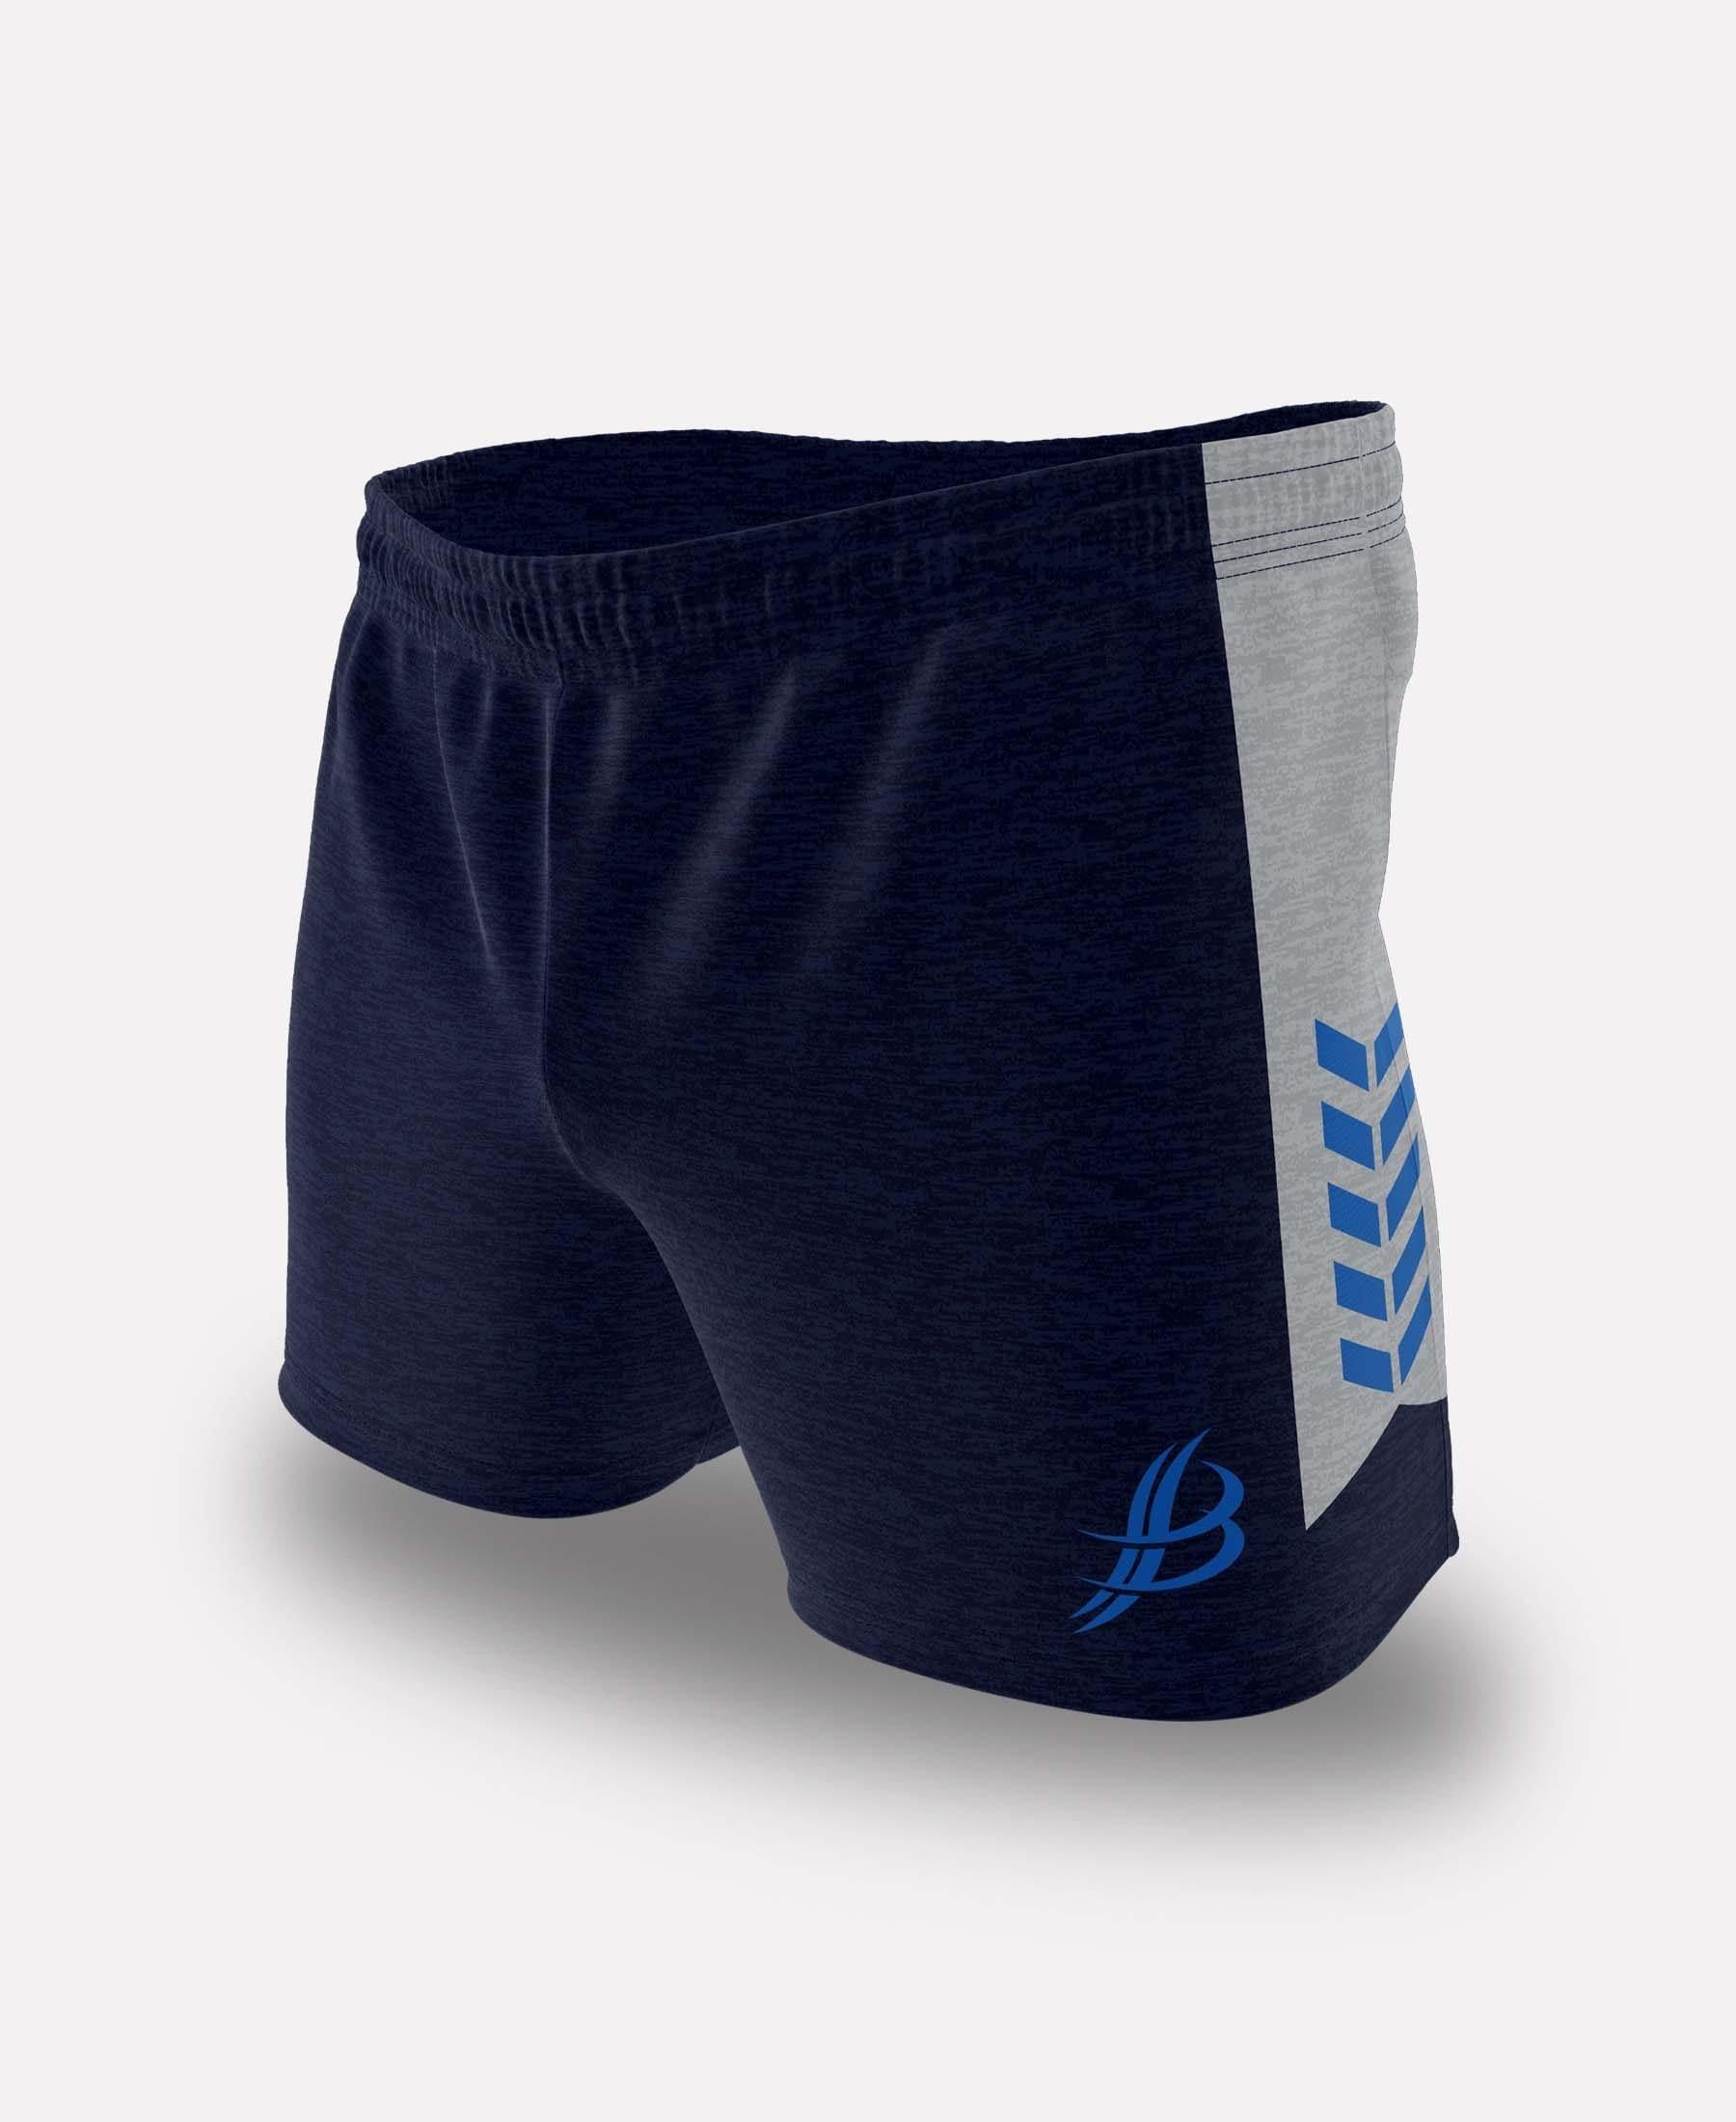 BUA20 Shorts (Navy/Grey/Royal) - Bourke Sports Limited